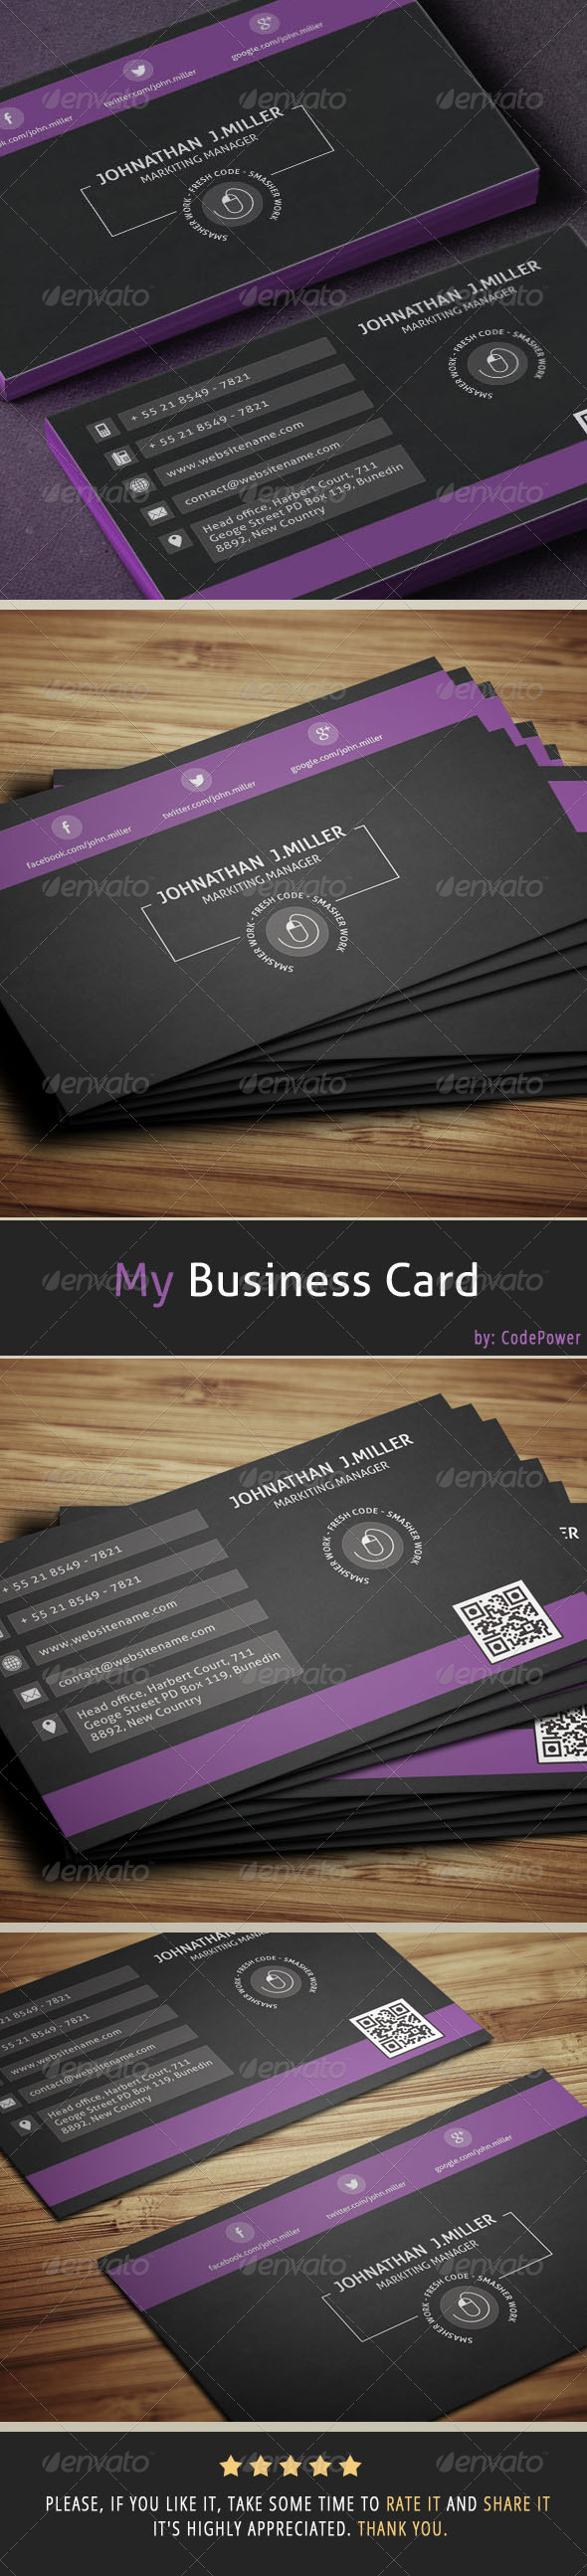 GraphicRiver My Business Card 7024039